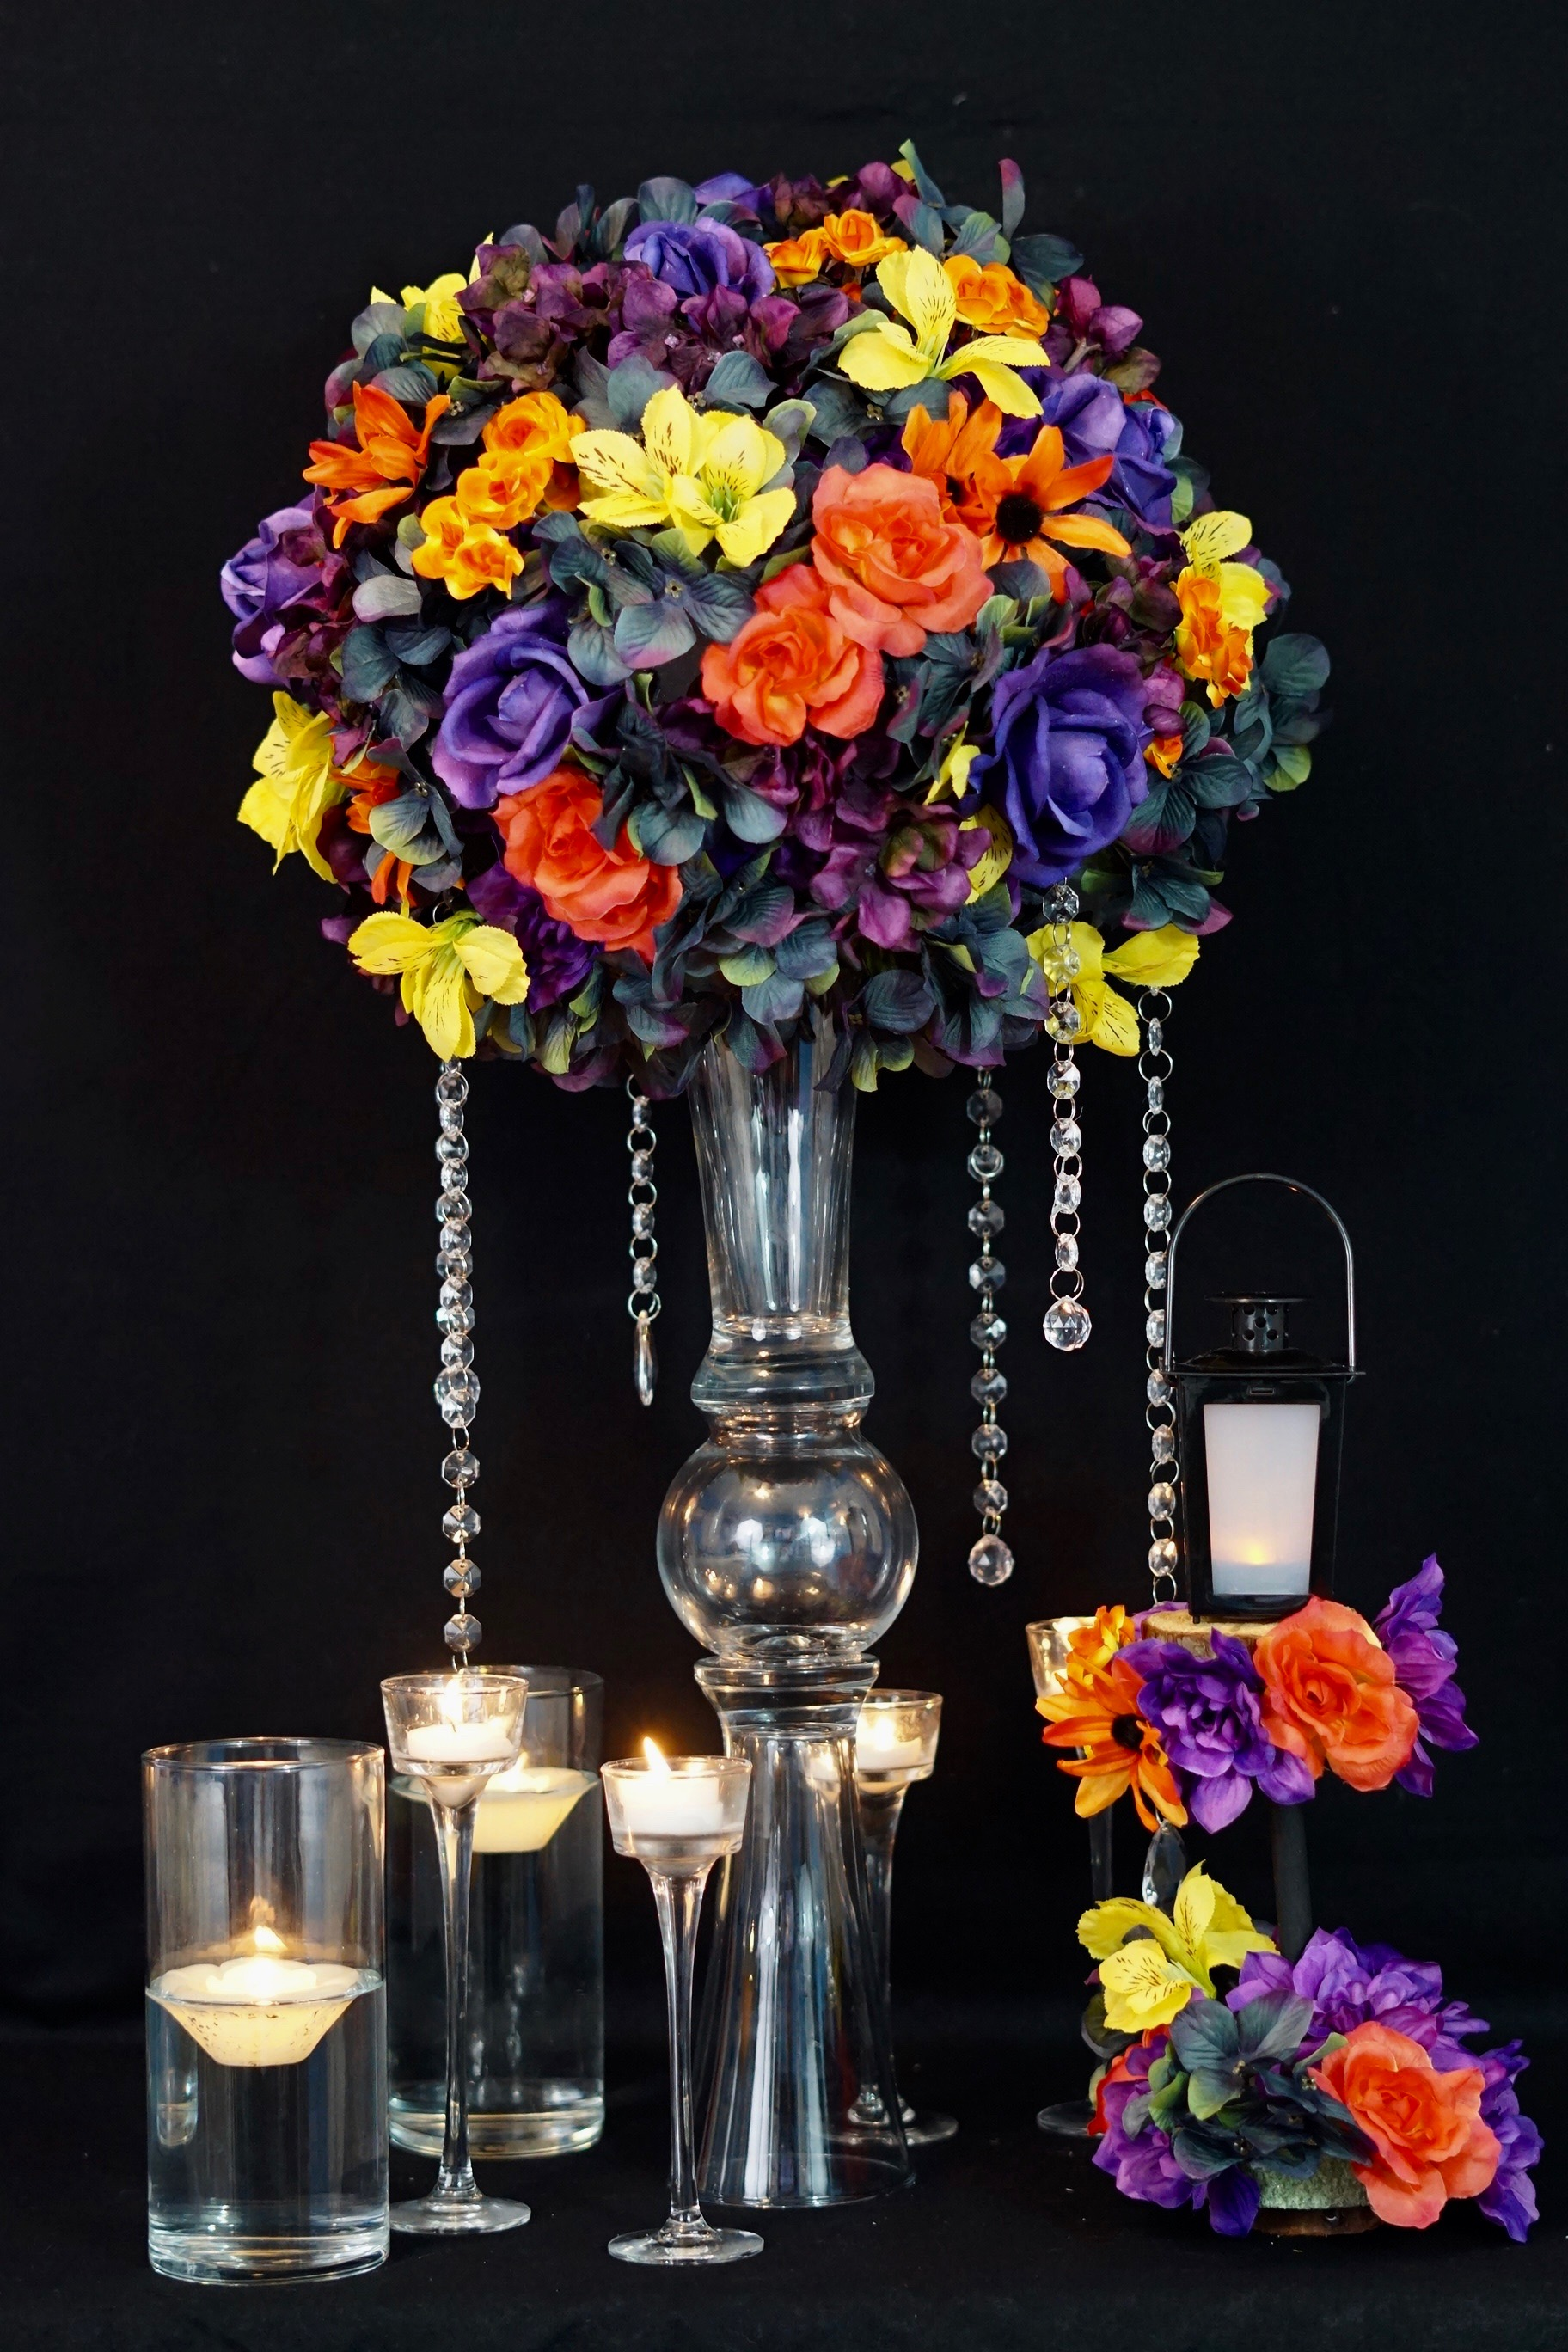 Wedding Centerpiece on a Budget